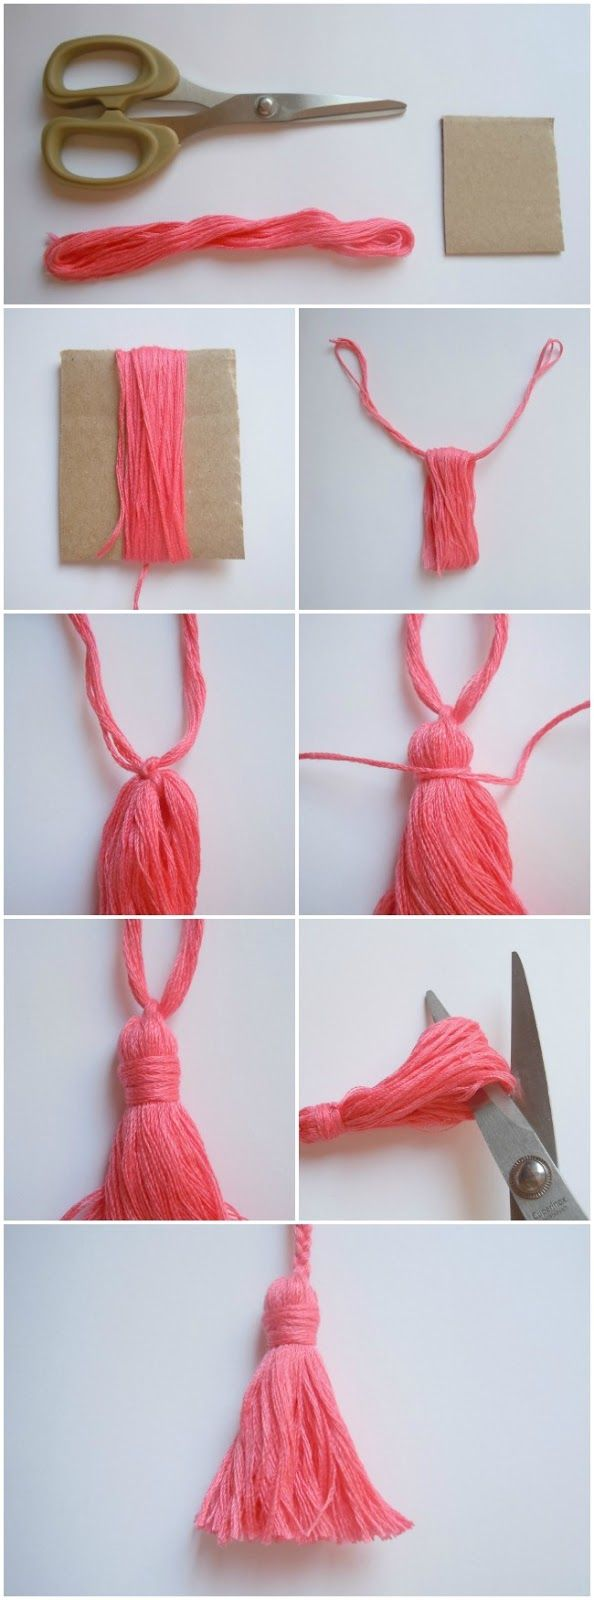 HOW TO MAKE TASSELS... This will be useful for something eventually!!